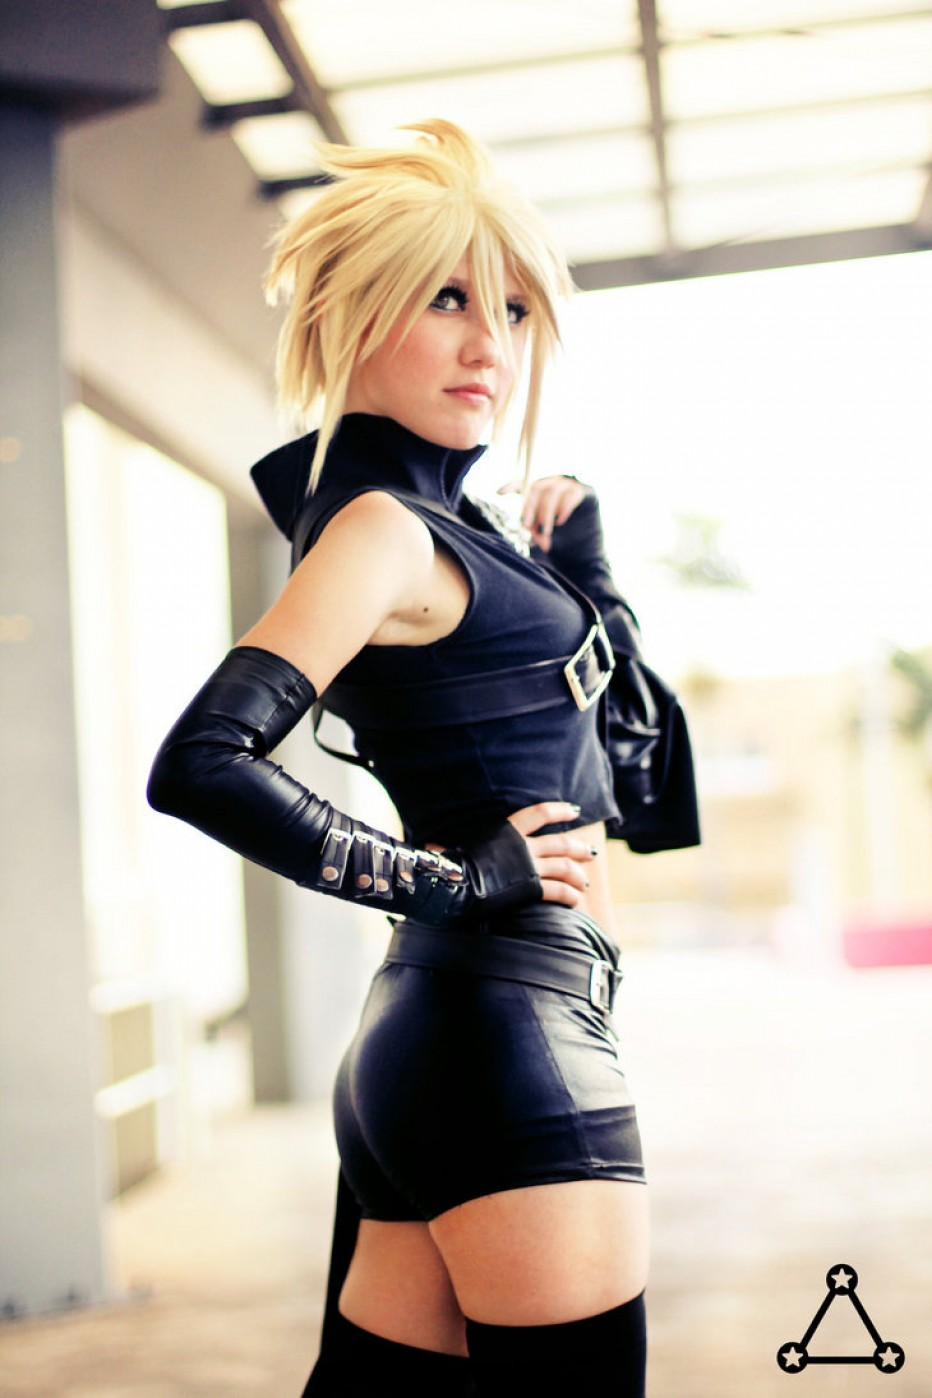 Final-Fantasy-VII-Cosplay-Gamers-Heroes.jpg